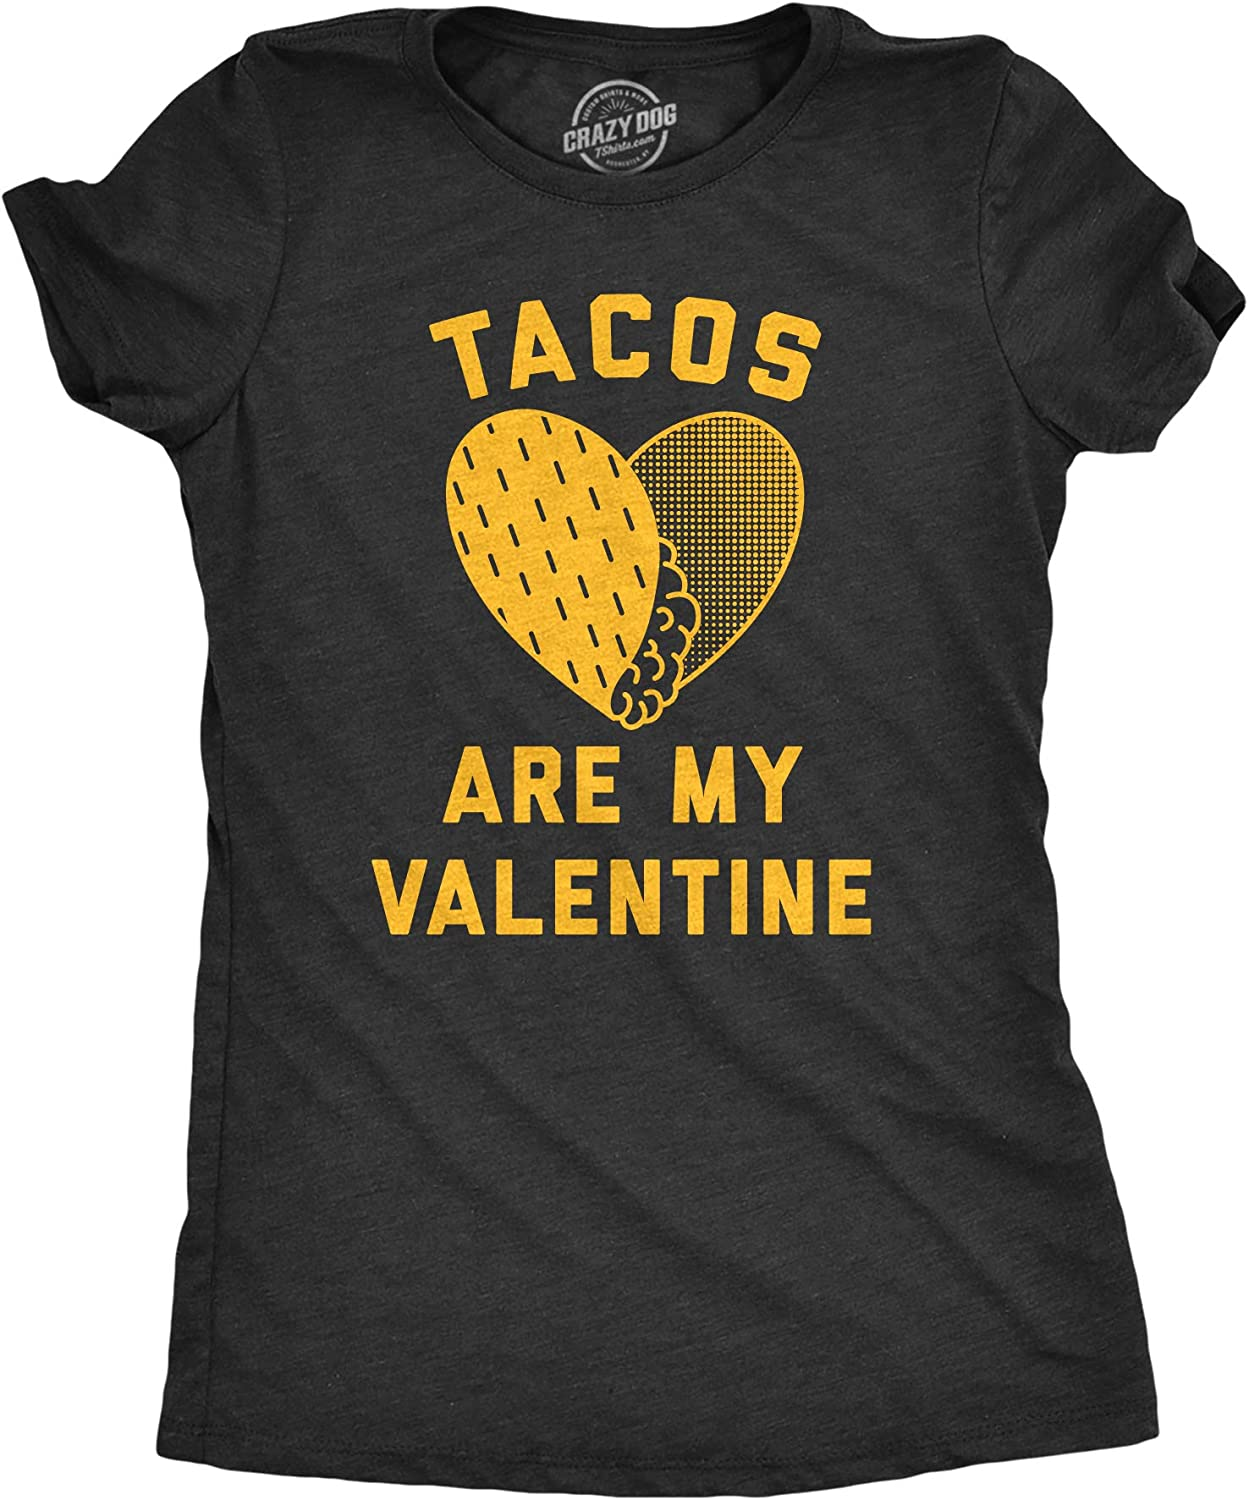 Womens Tacos are My Valentine Tshirt Funny Mexican Food Valentine's Day Tee